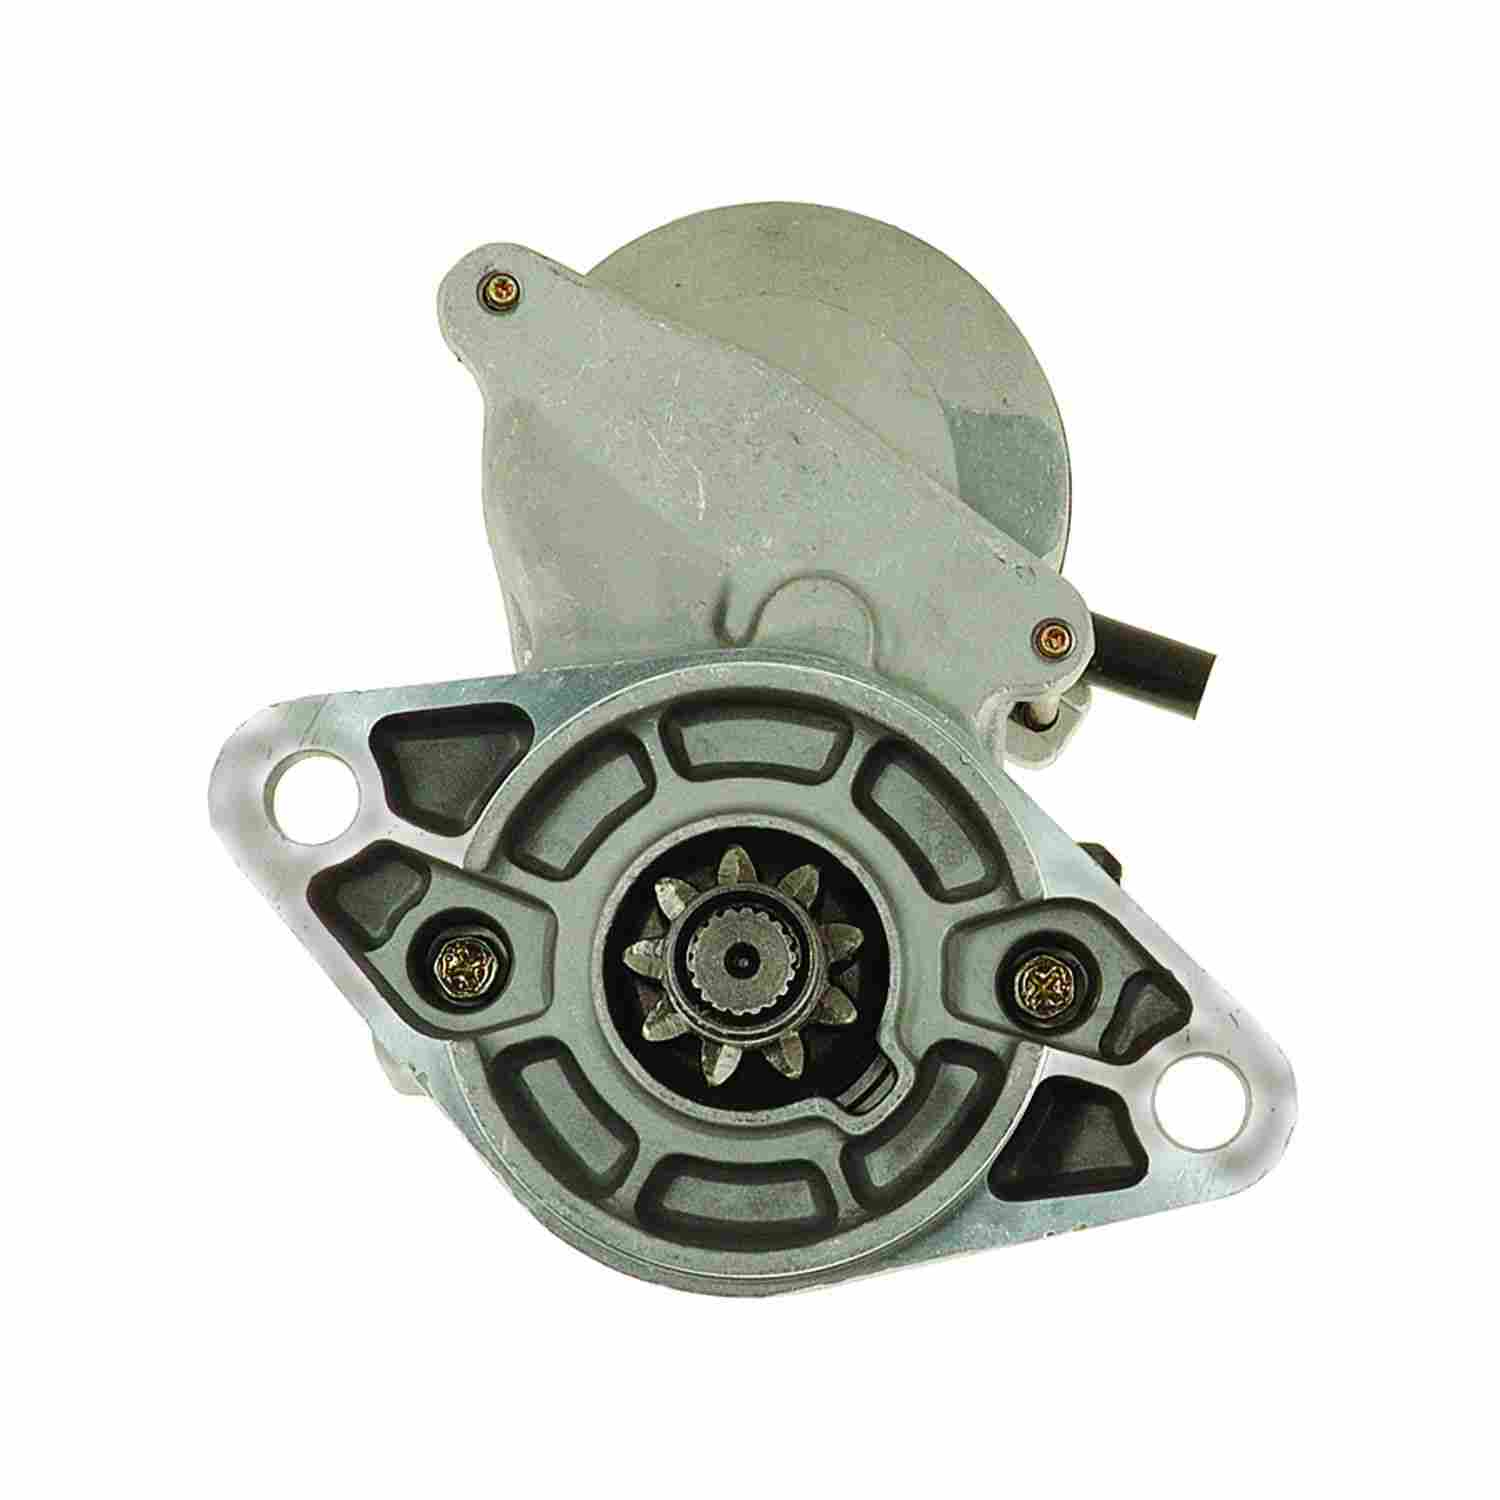 ACDELCO GOLD/PROFESSIONAL - Starter Motor - DCC 337-1090